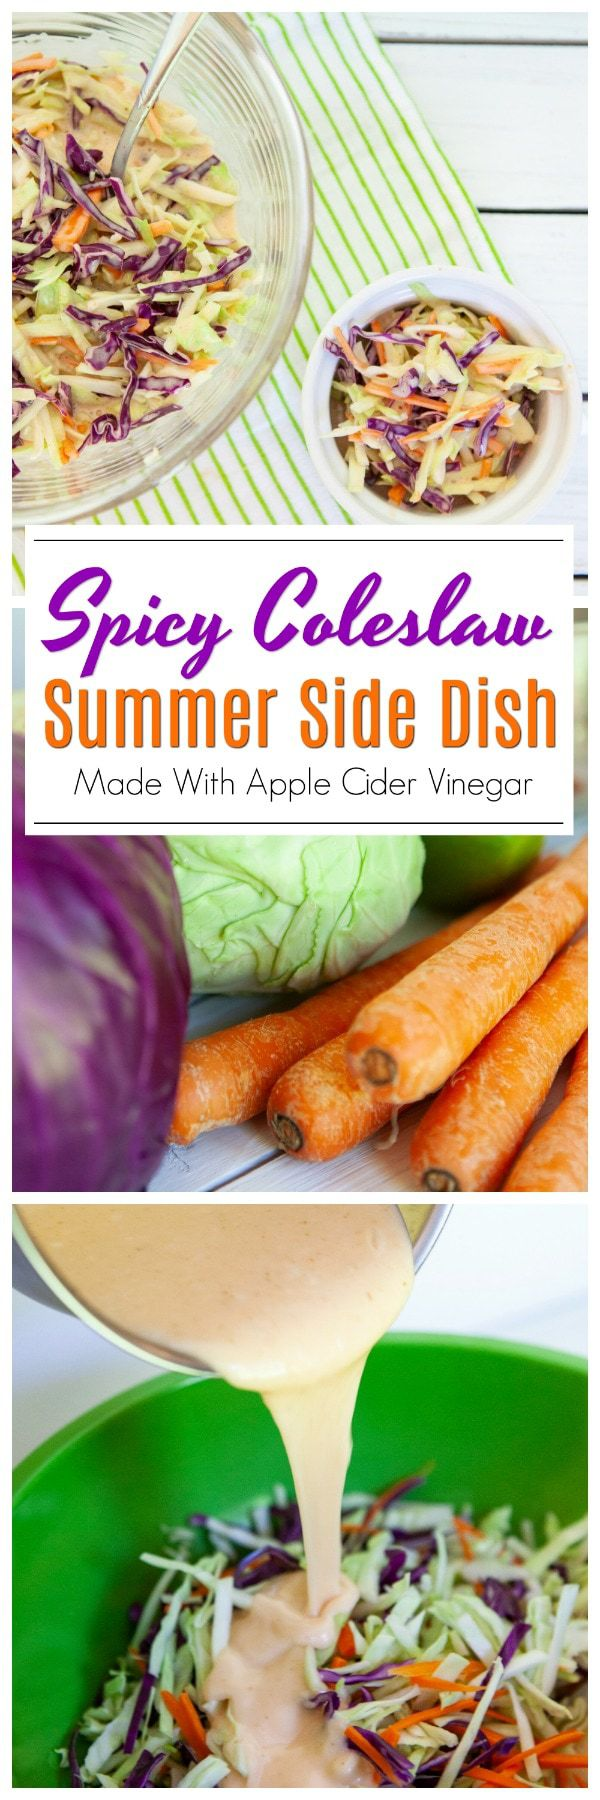 When it comes to the summertime months and food items that are a staple in so many homes, this Spicy Summer Slaw needs to be added to the list.Not only is slaw one of those foods that truly goes perfectly with anything and everything BBQ, but the added kick of that spicy flavor sends this over the top. #SpicySlaw #SummerSlaw